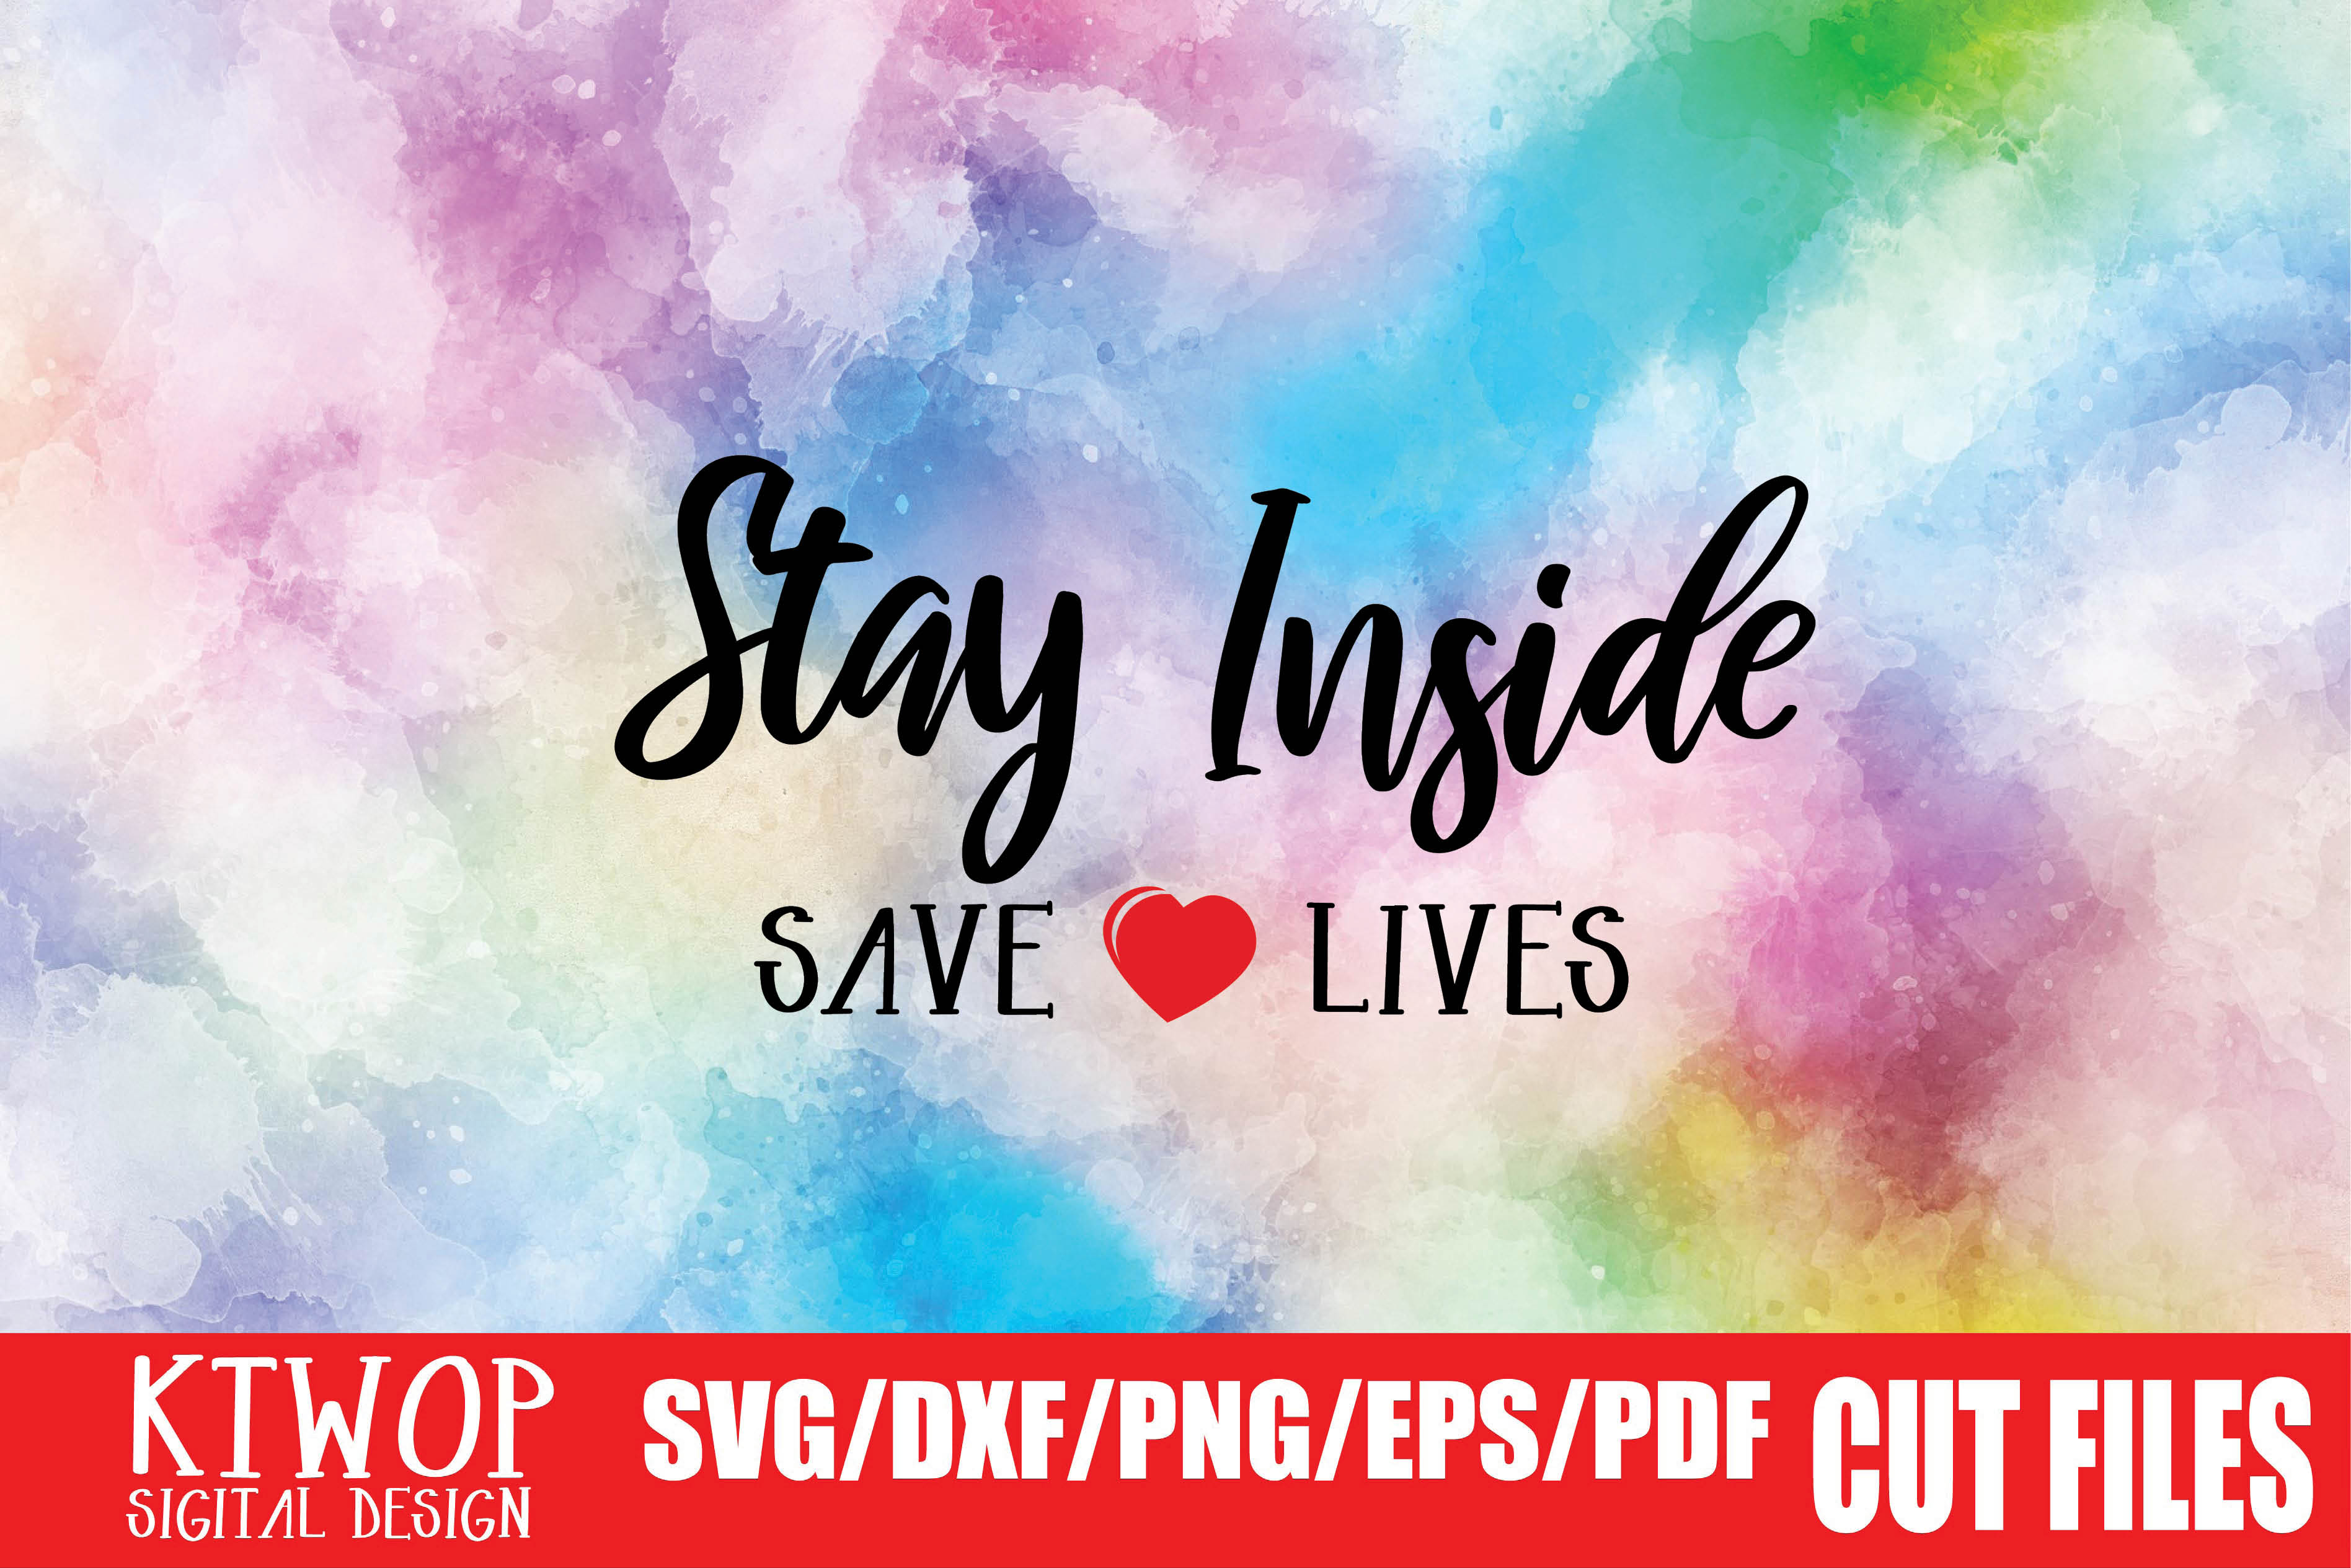 Download Free Stay Inside Save Lives Graphic By Ktwop Creative Fabrica for Cricut Explore, Silhouette and other cutting machines.